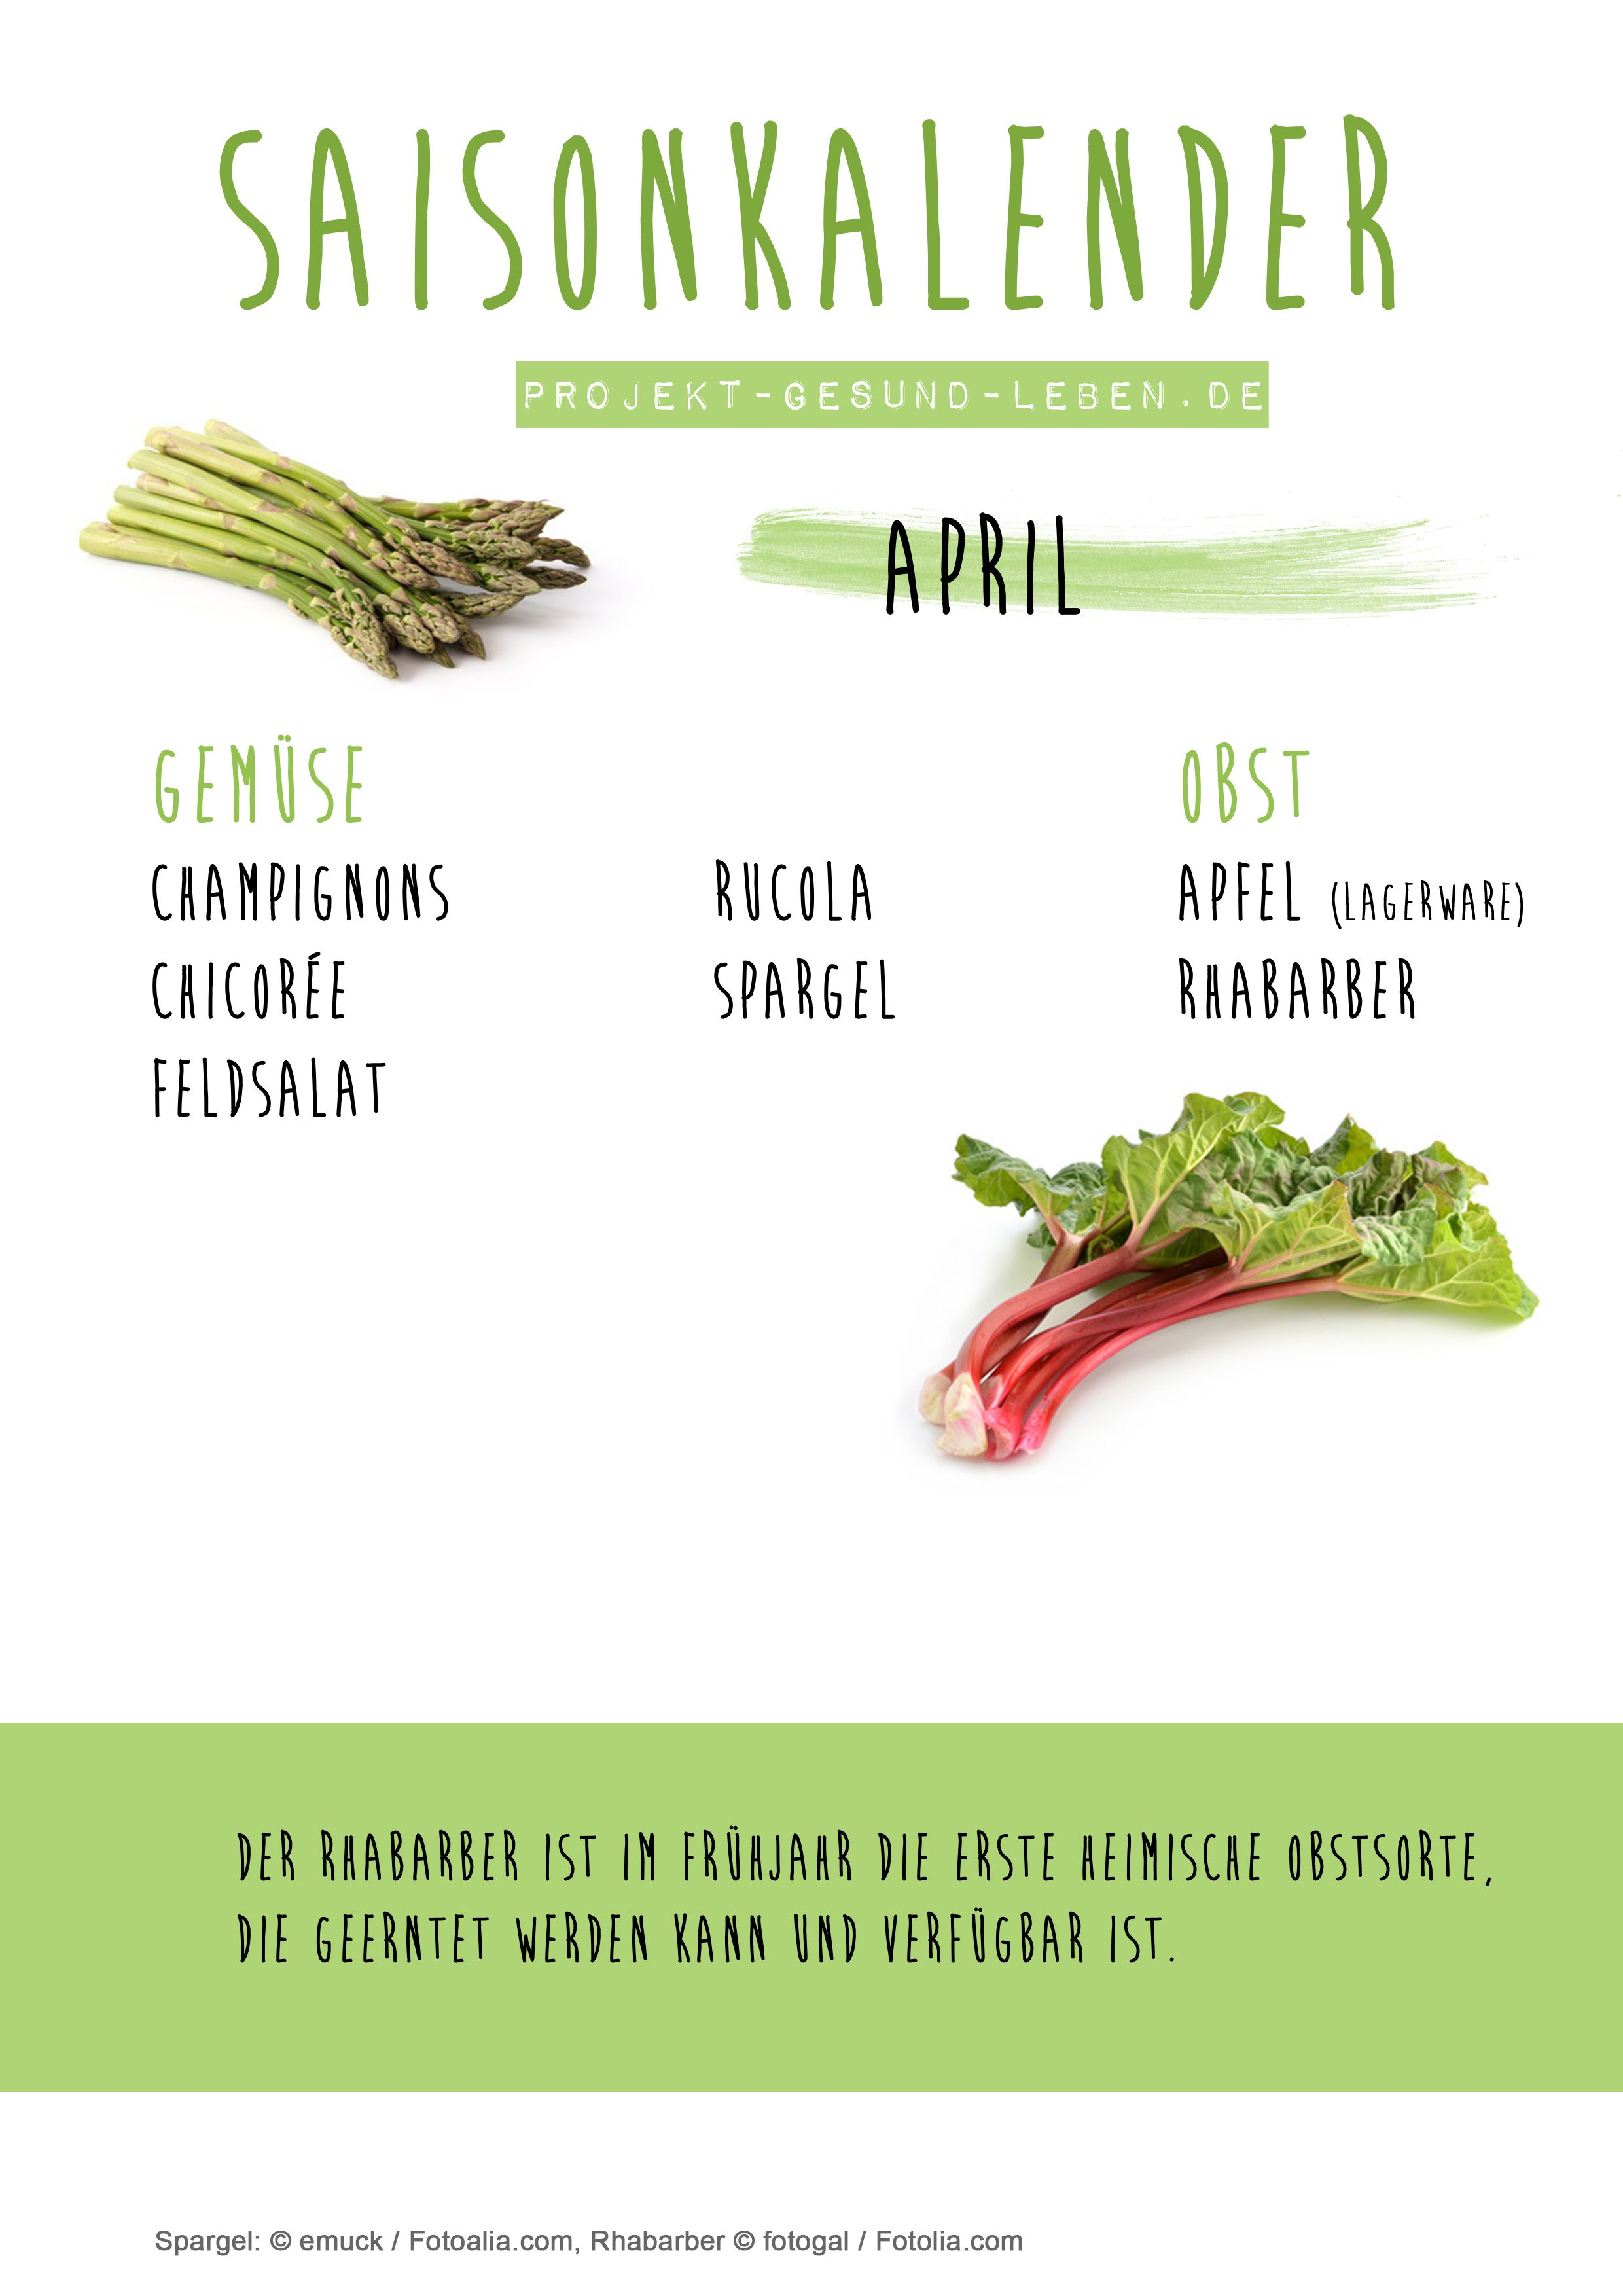 Saisonkalender April #cleaneating